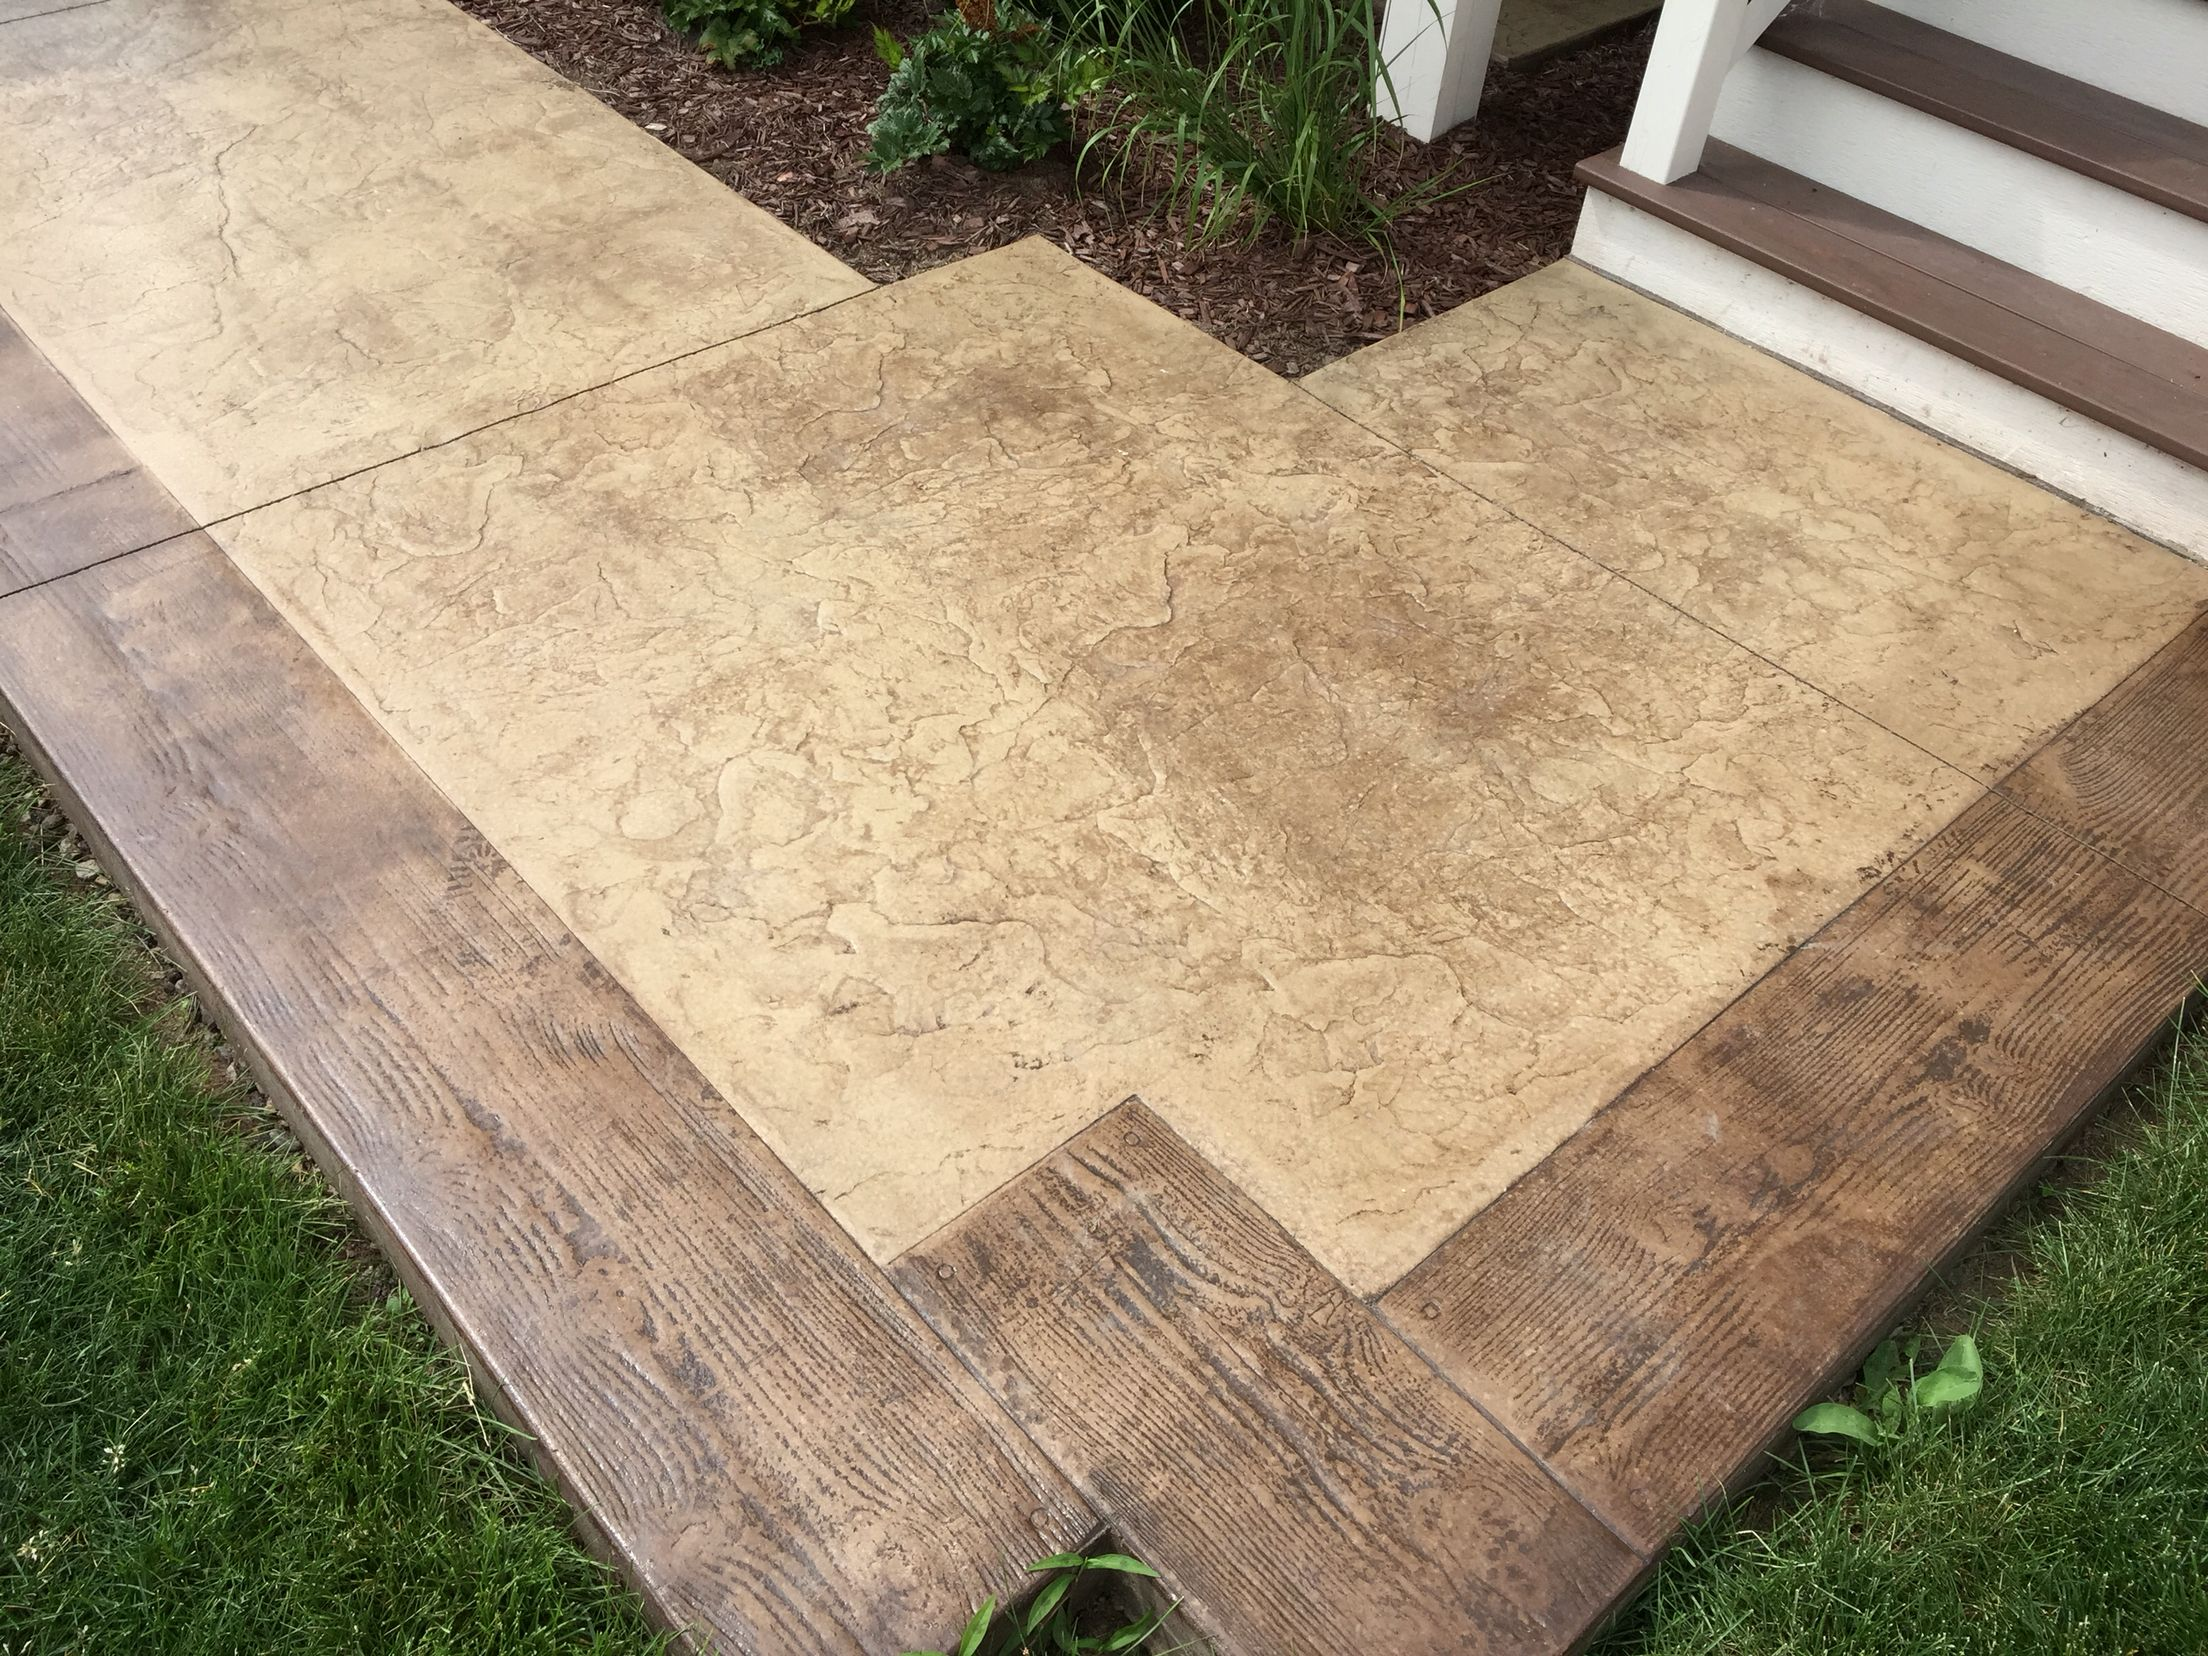 Broomed Concrete Sidewalk with Stamp Border | PATIO | Pinterest ...